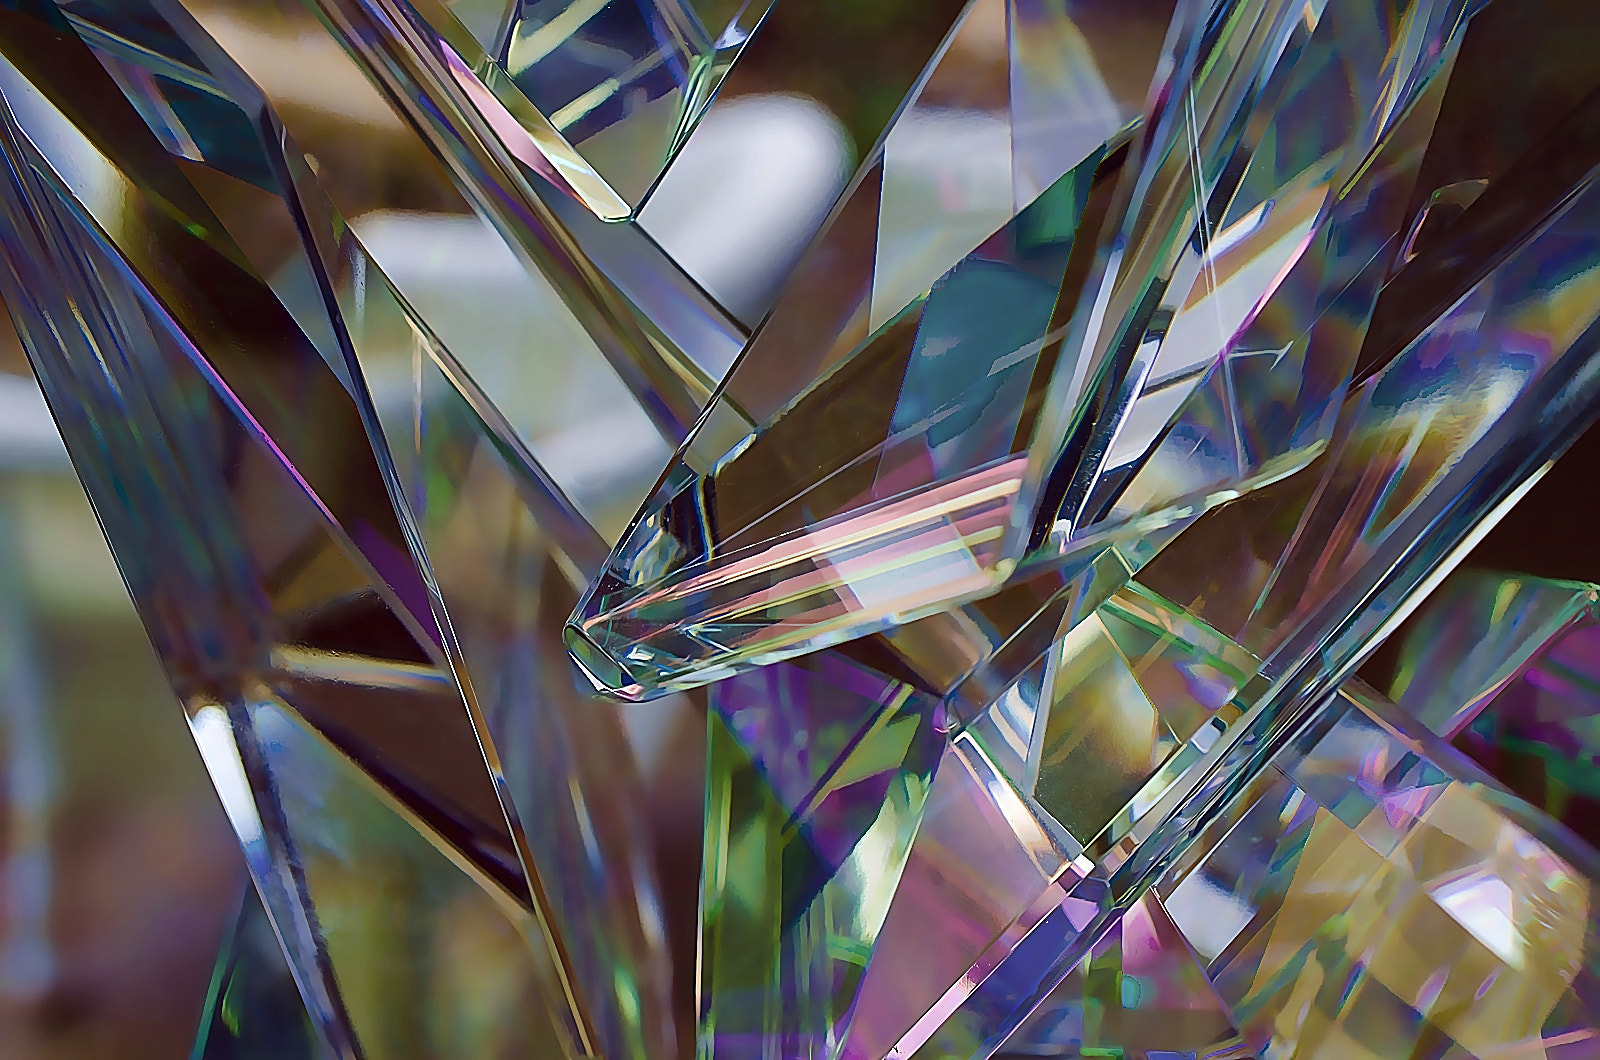 Photograph Reflecting Glass Sculpture by Phyllis Plotkin on 500px